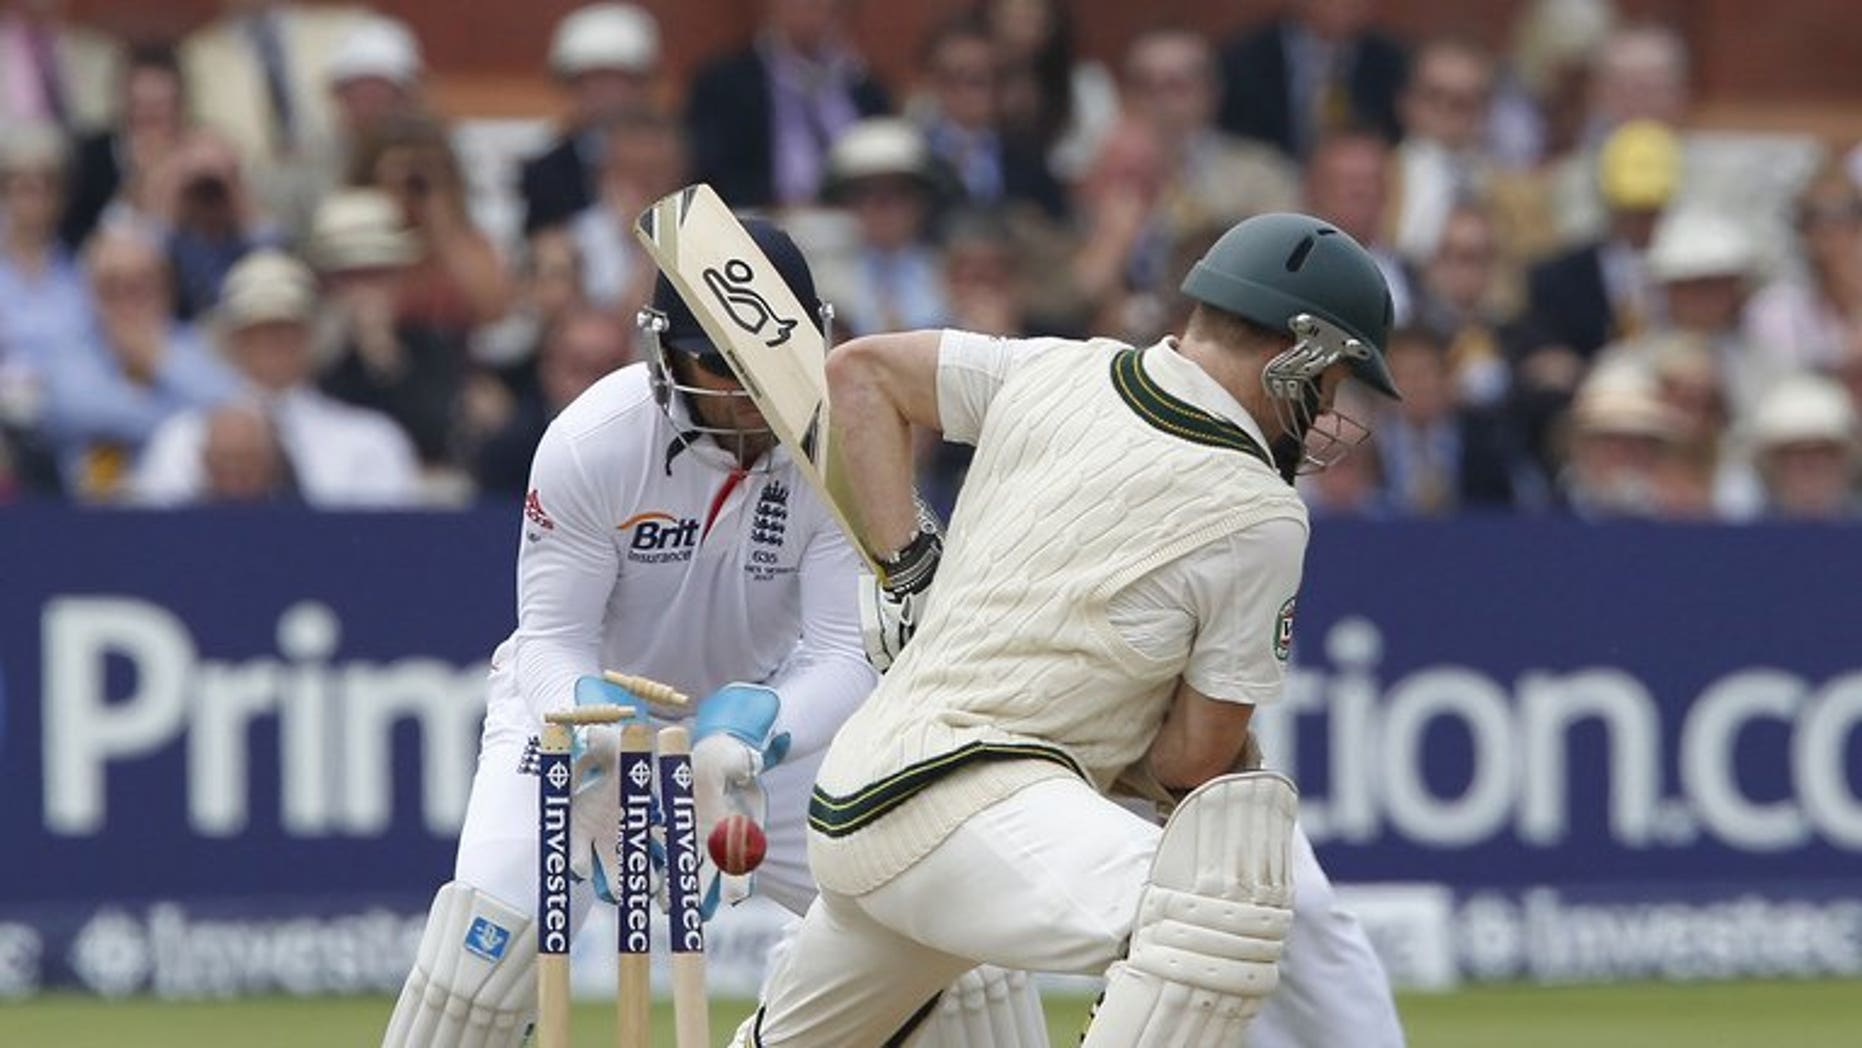 Chris Rogers is bowled by England's Graeme Swann (not pictured) at Lord's on July 21. Rogers said on Tuesday that Australia could only benefit from David Warner's return, even though the opener may have to make way if his fellow left-hander plays in the third Test against England.